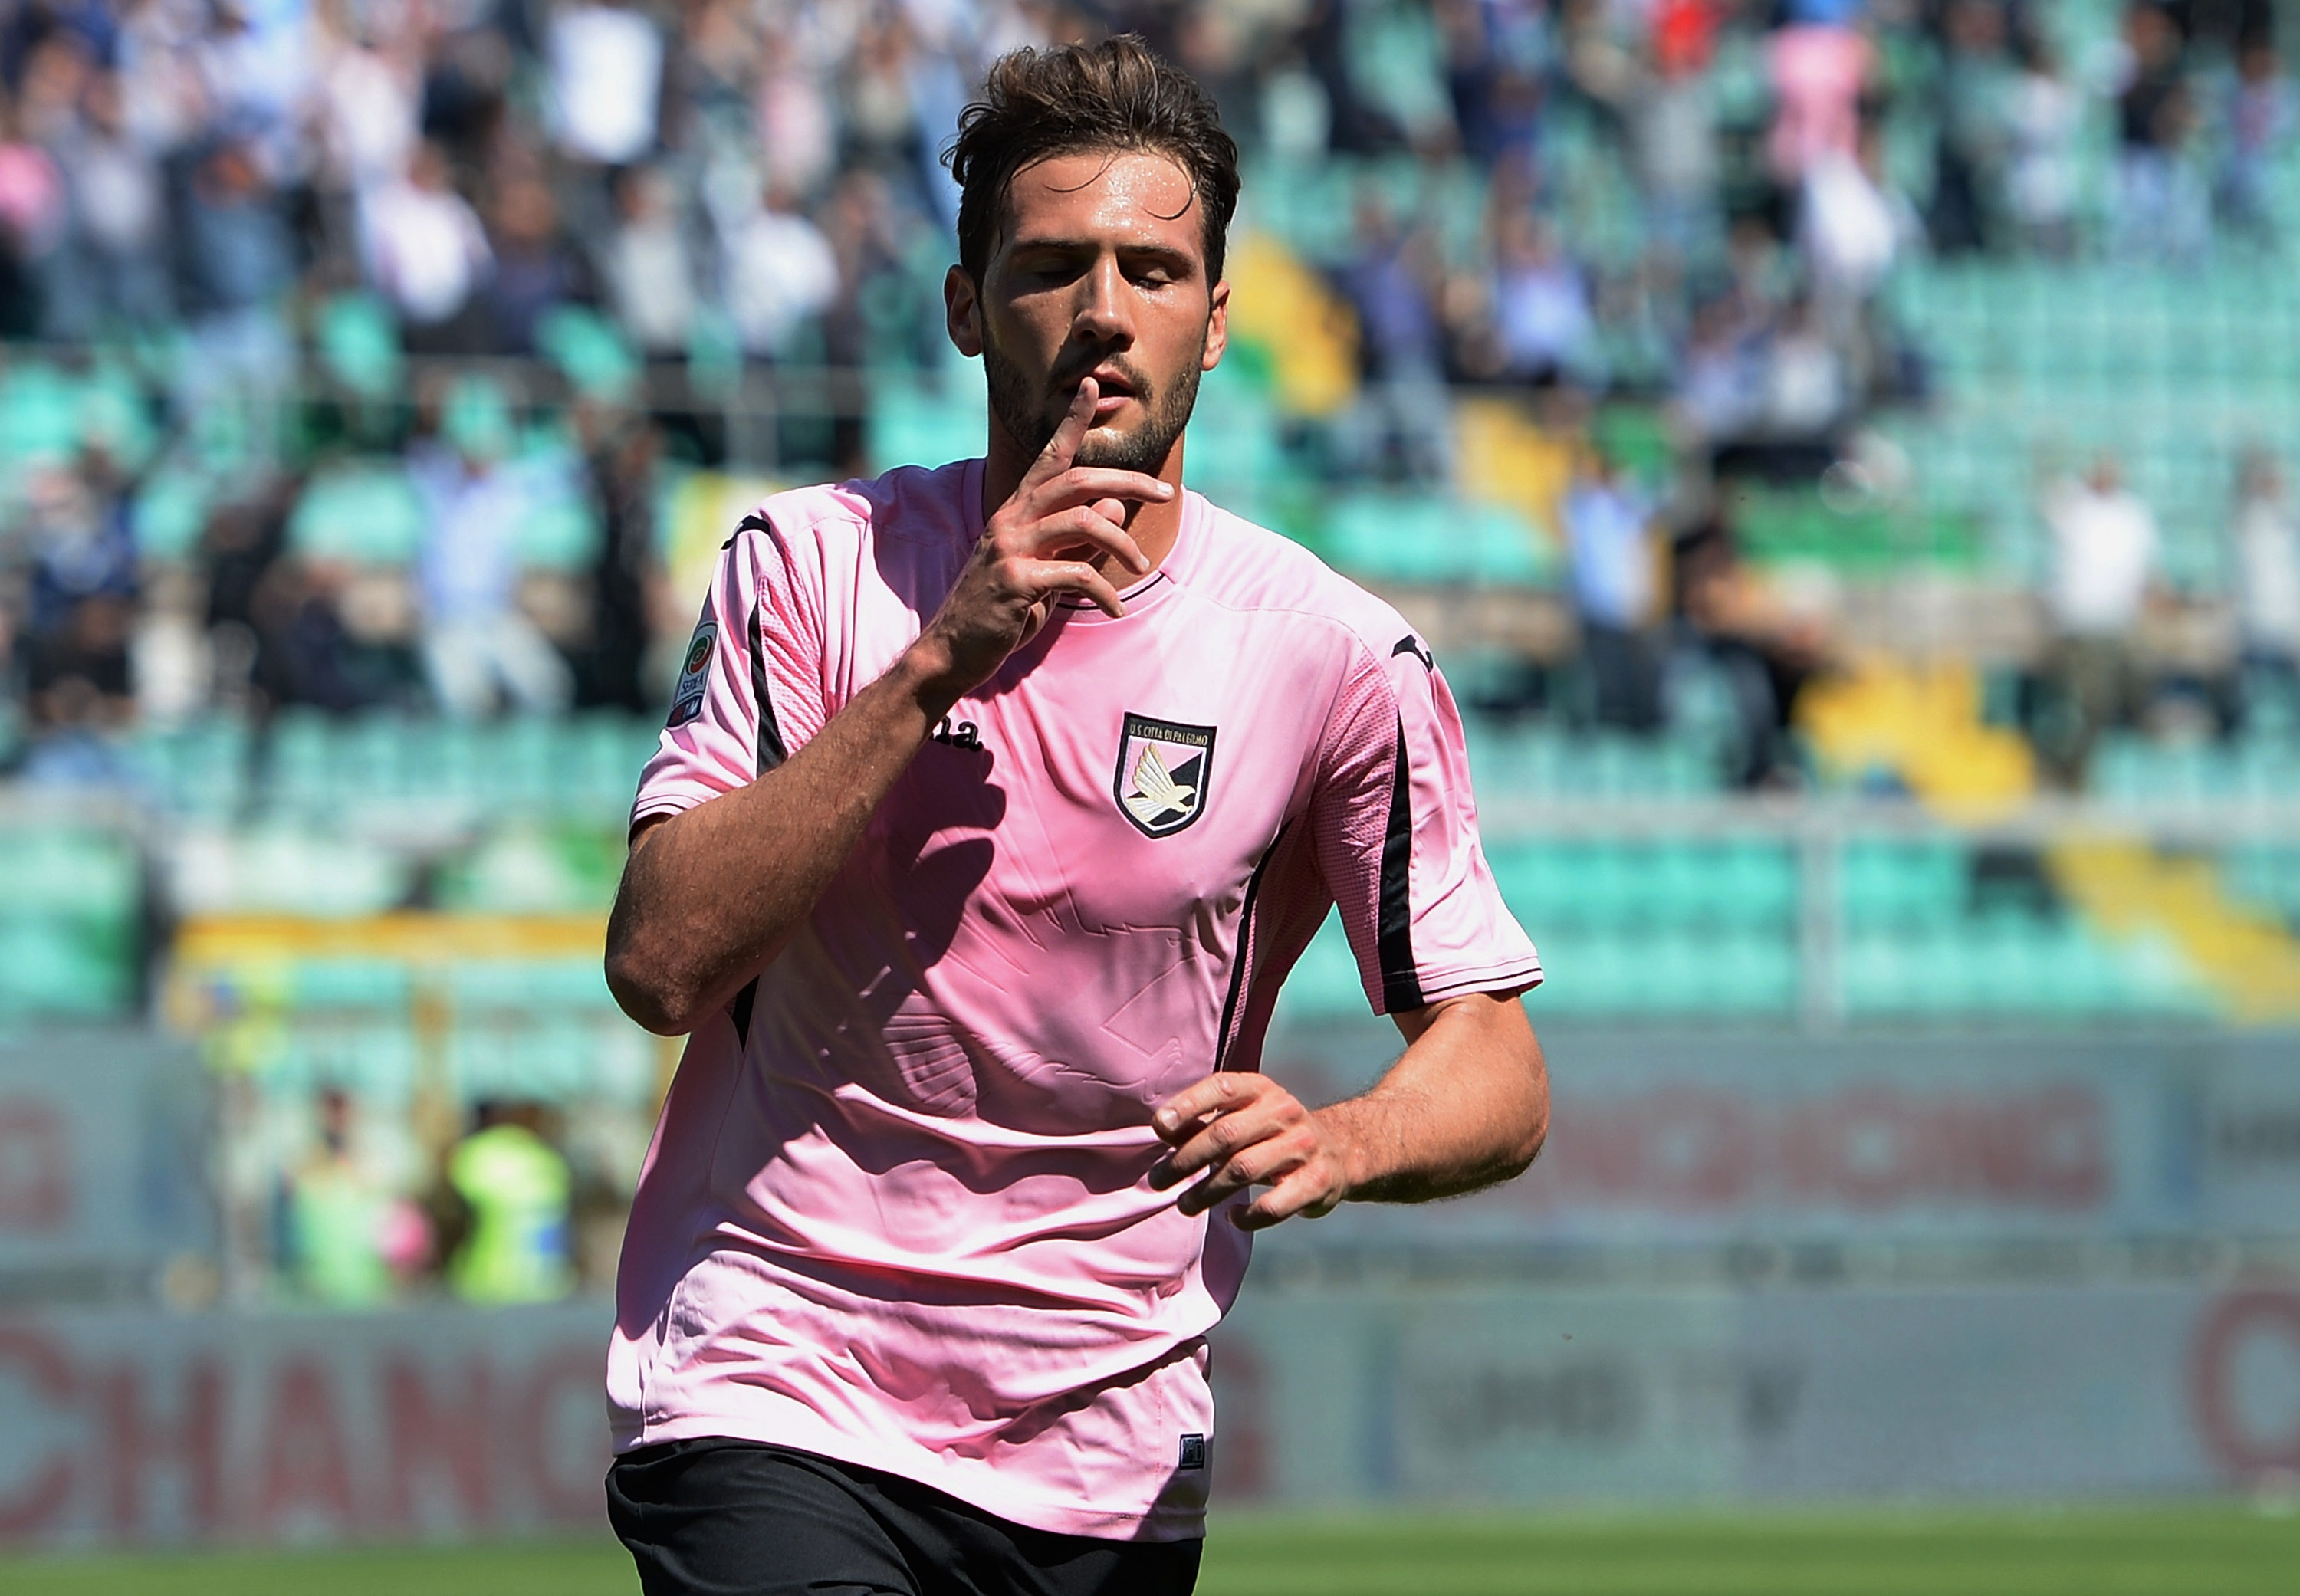 Palermo boss confirms talks with Tottenham over Franco Vazquez